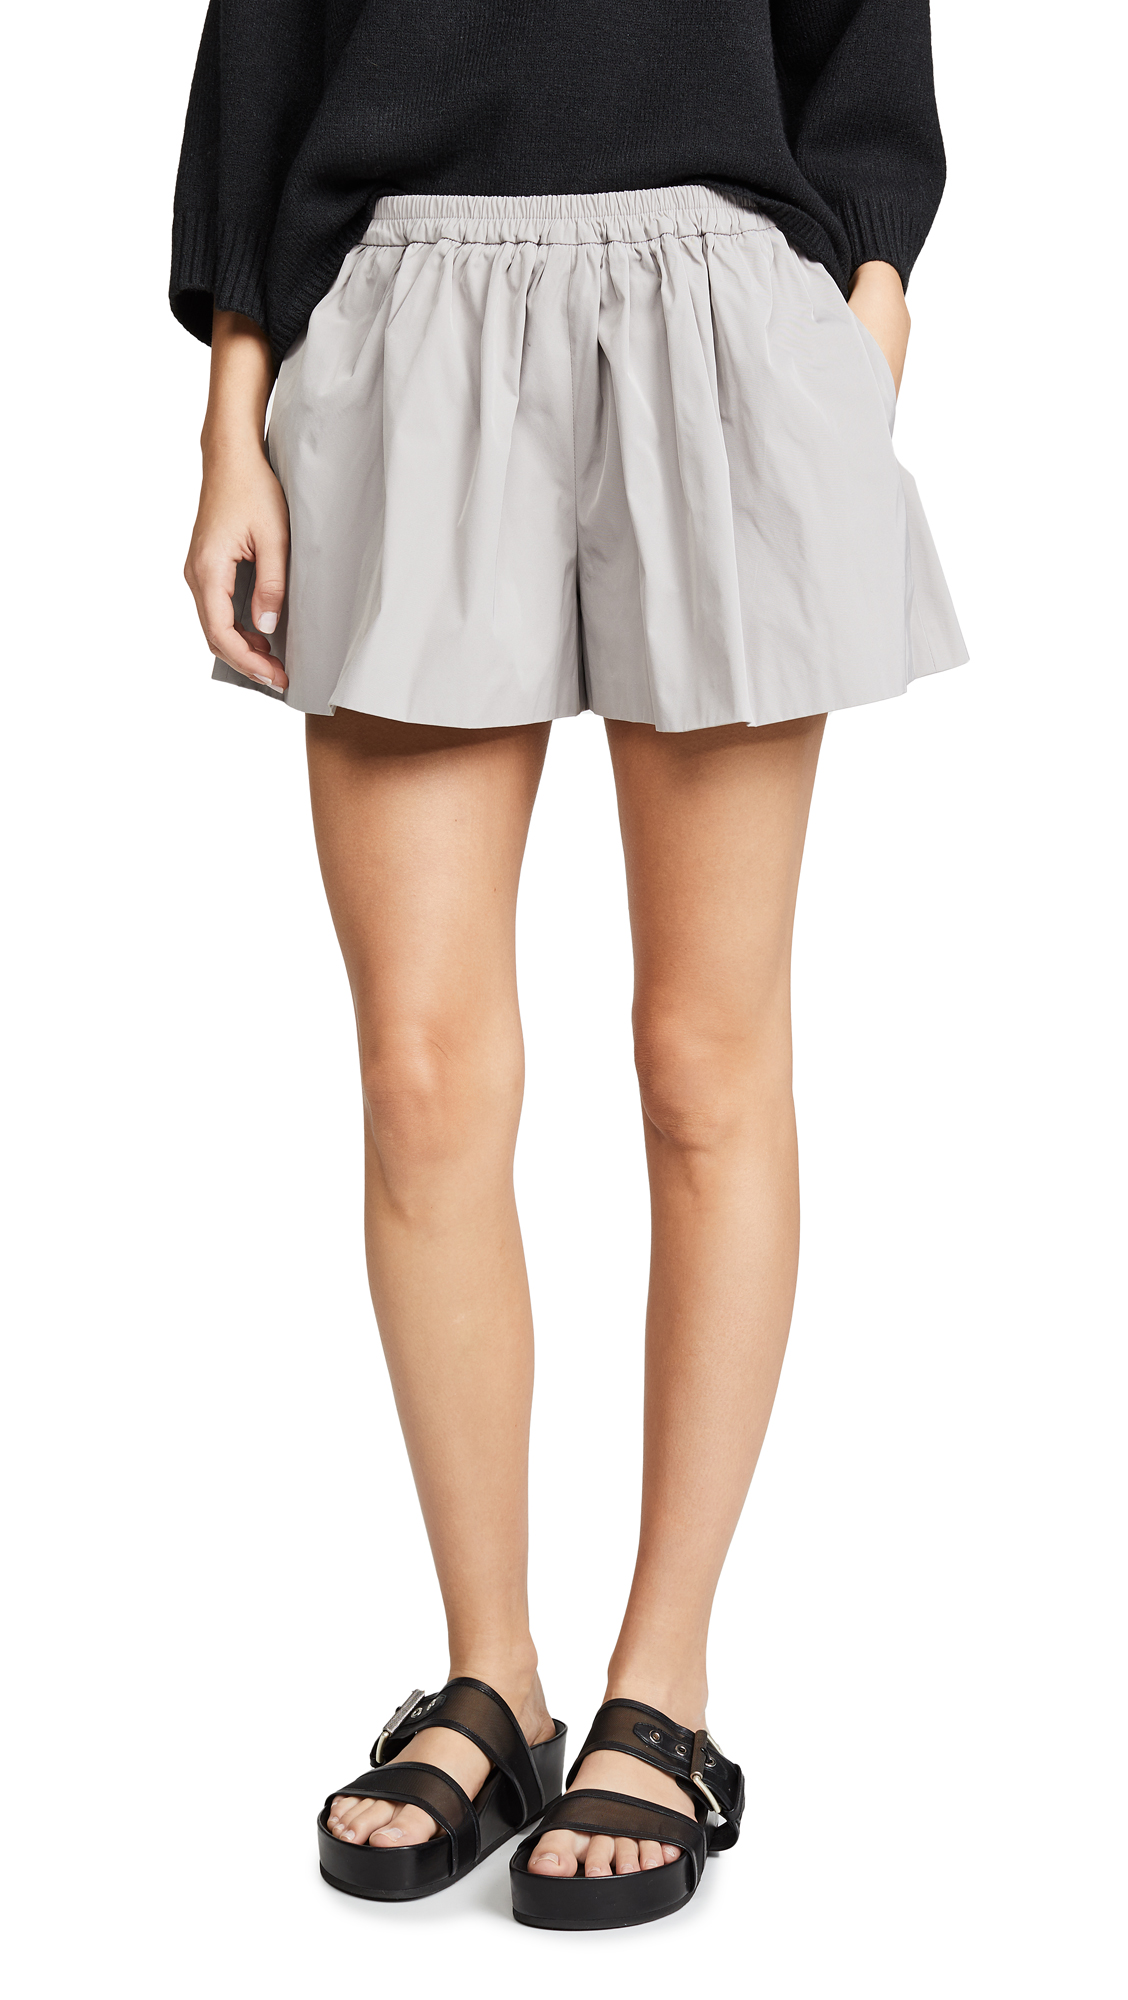 RED Valentino Cinched Pull On Shorts - Pirite